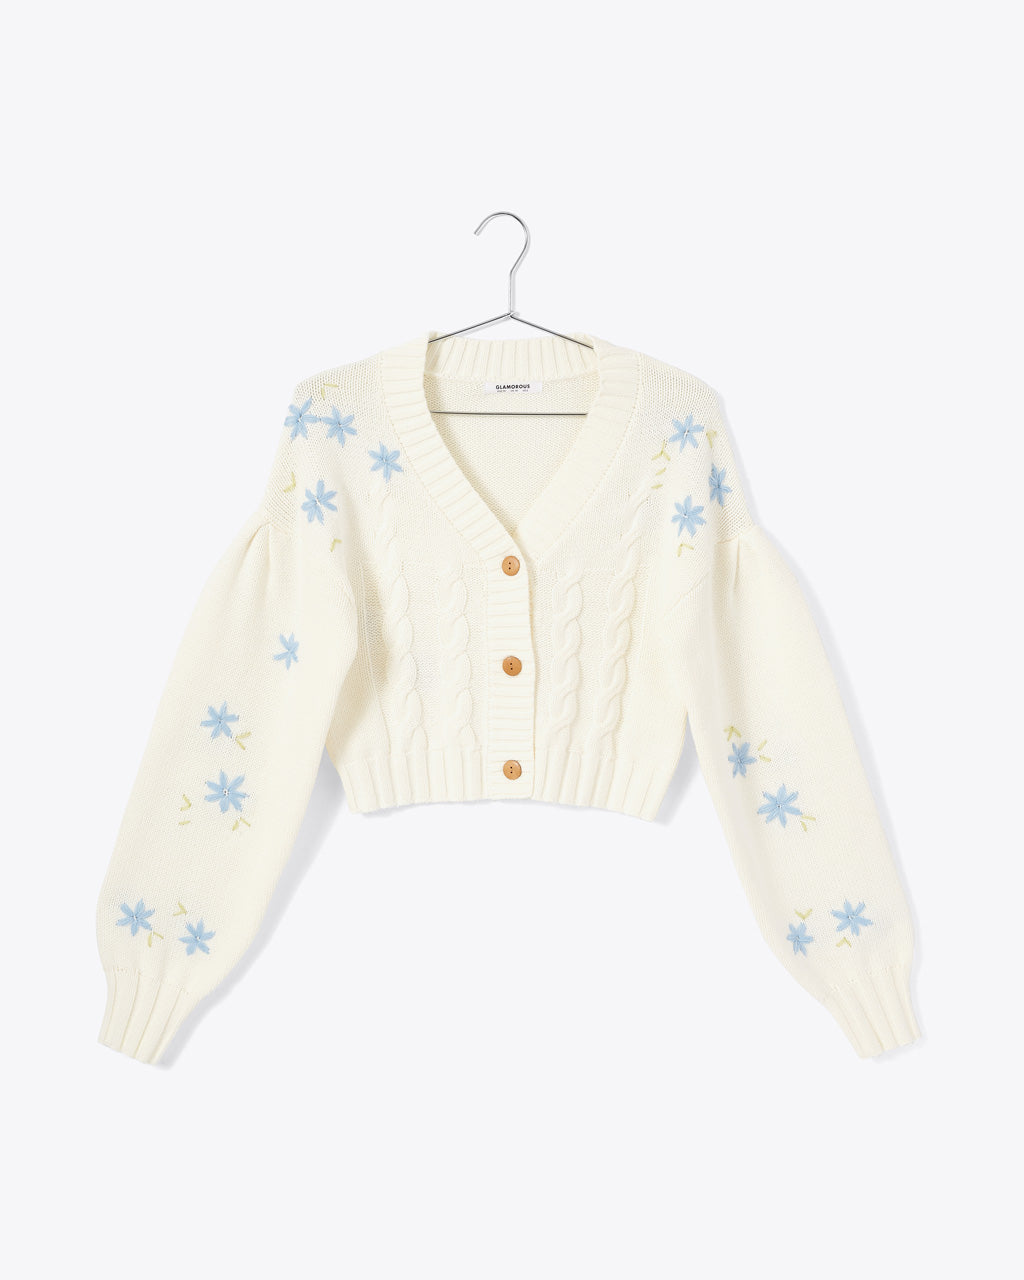 cream colored cropped cable knit cardigan with blue floral embroidery embellishments and brown buttons shown on hanger(FRONT)